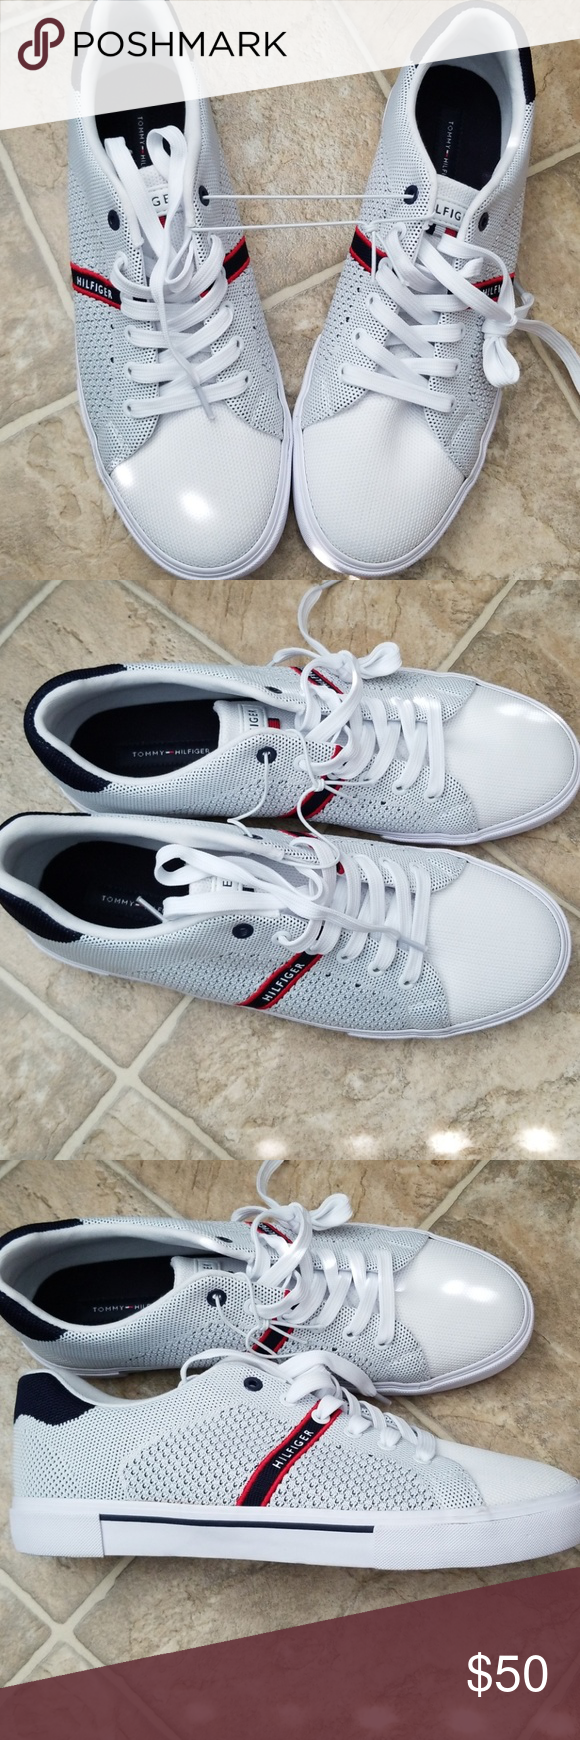 259b82822965c7 (BRAND NEW) TOMMY HILFIGER TENNIS SHOES New